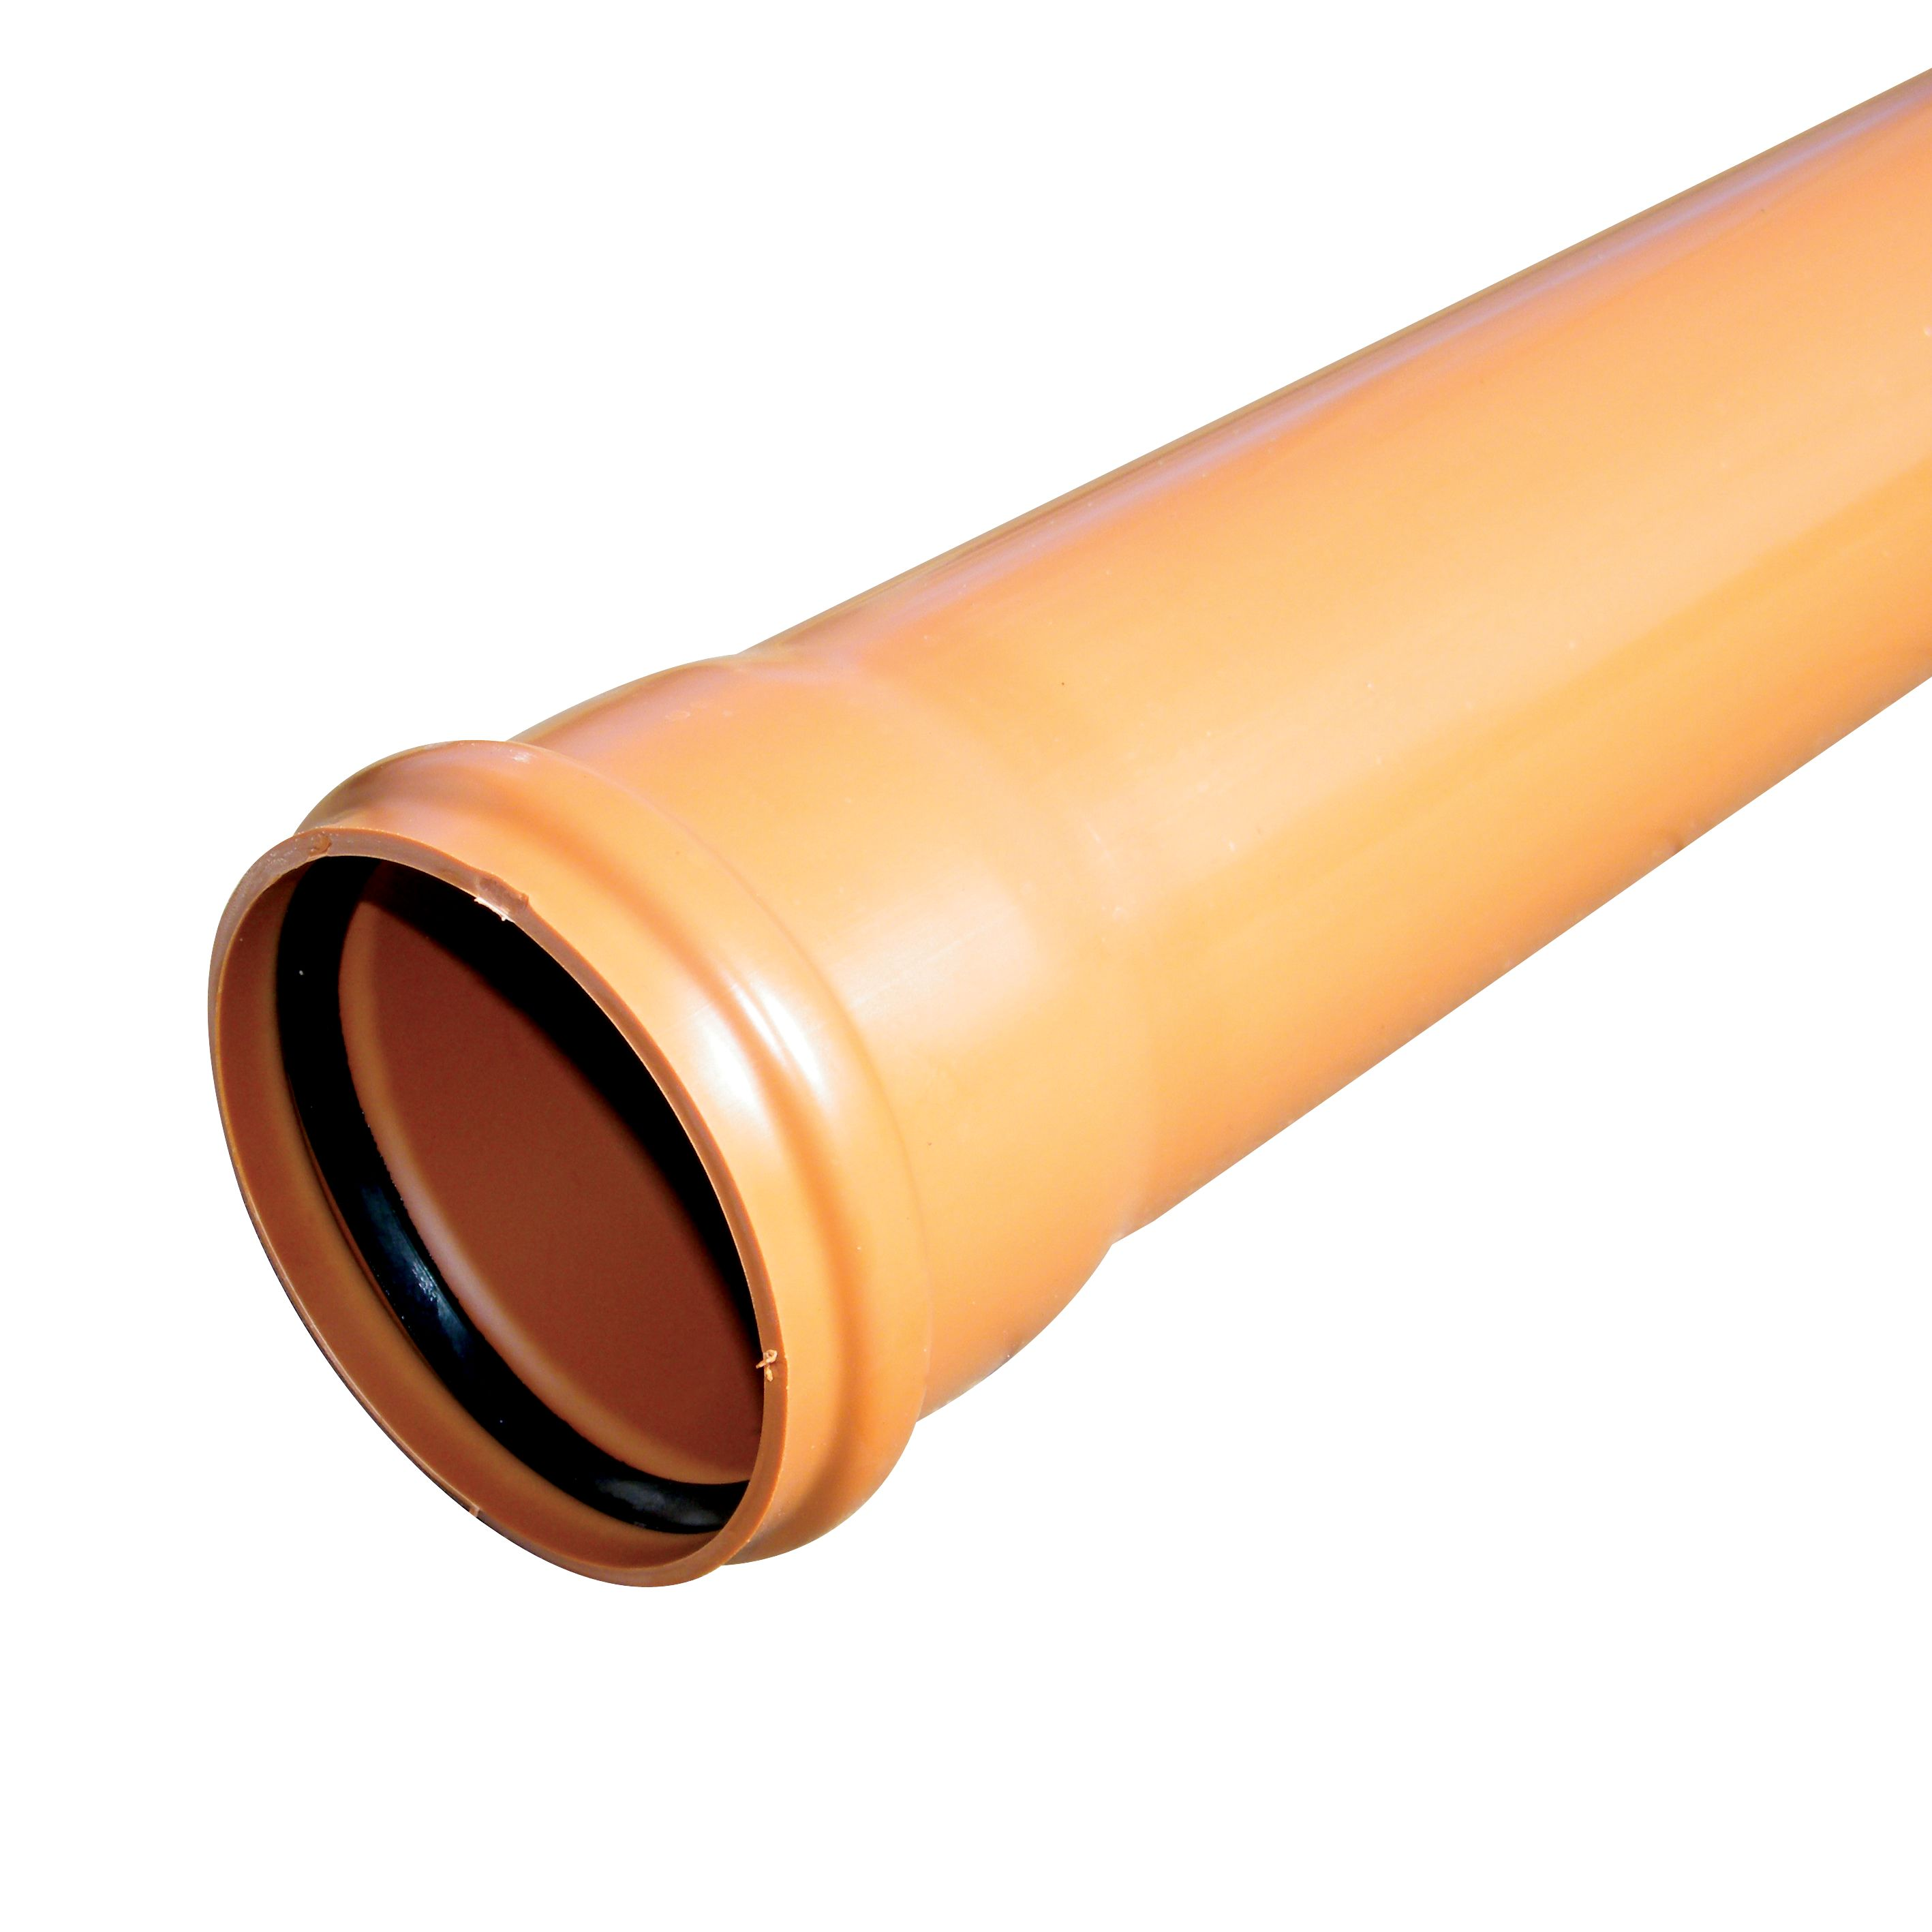 Floplast Underground Drainage Socketed Pipe Dia 110mm